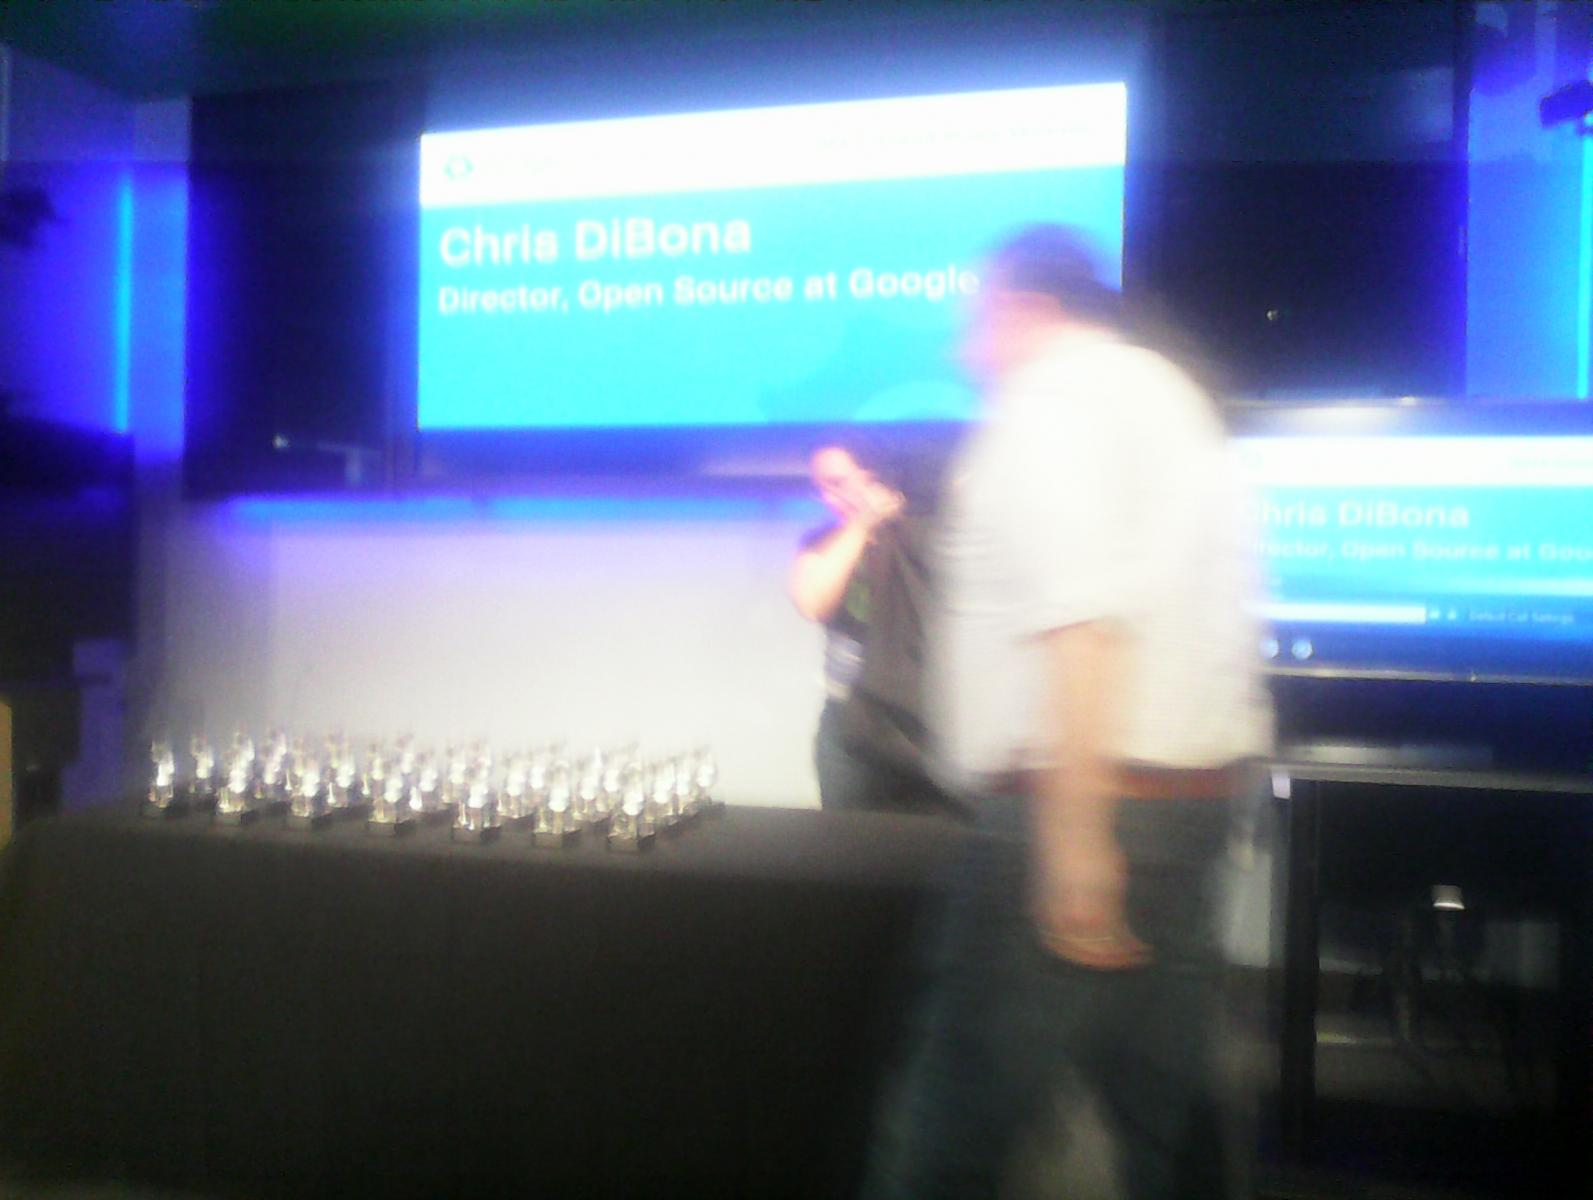 Trophies (no, that's not Google's buildings DRM, just a crappy tablet)